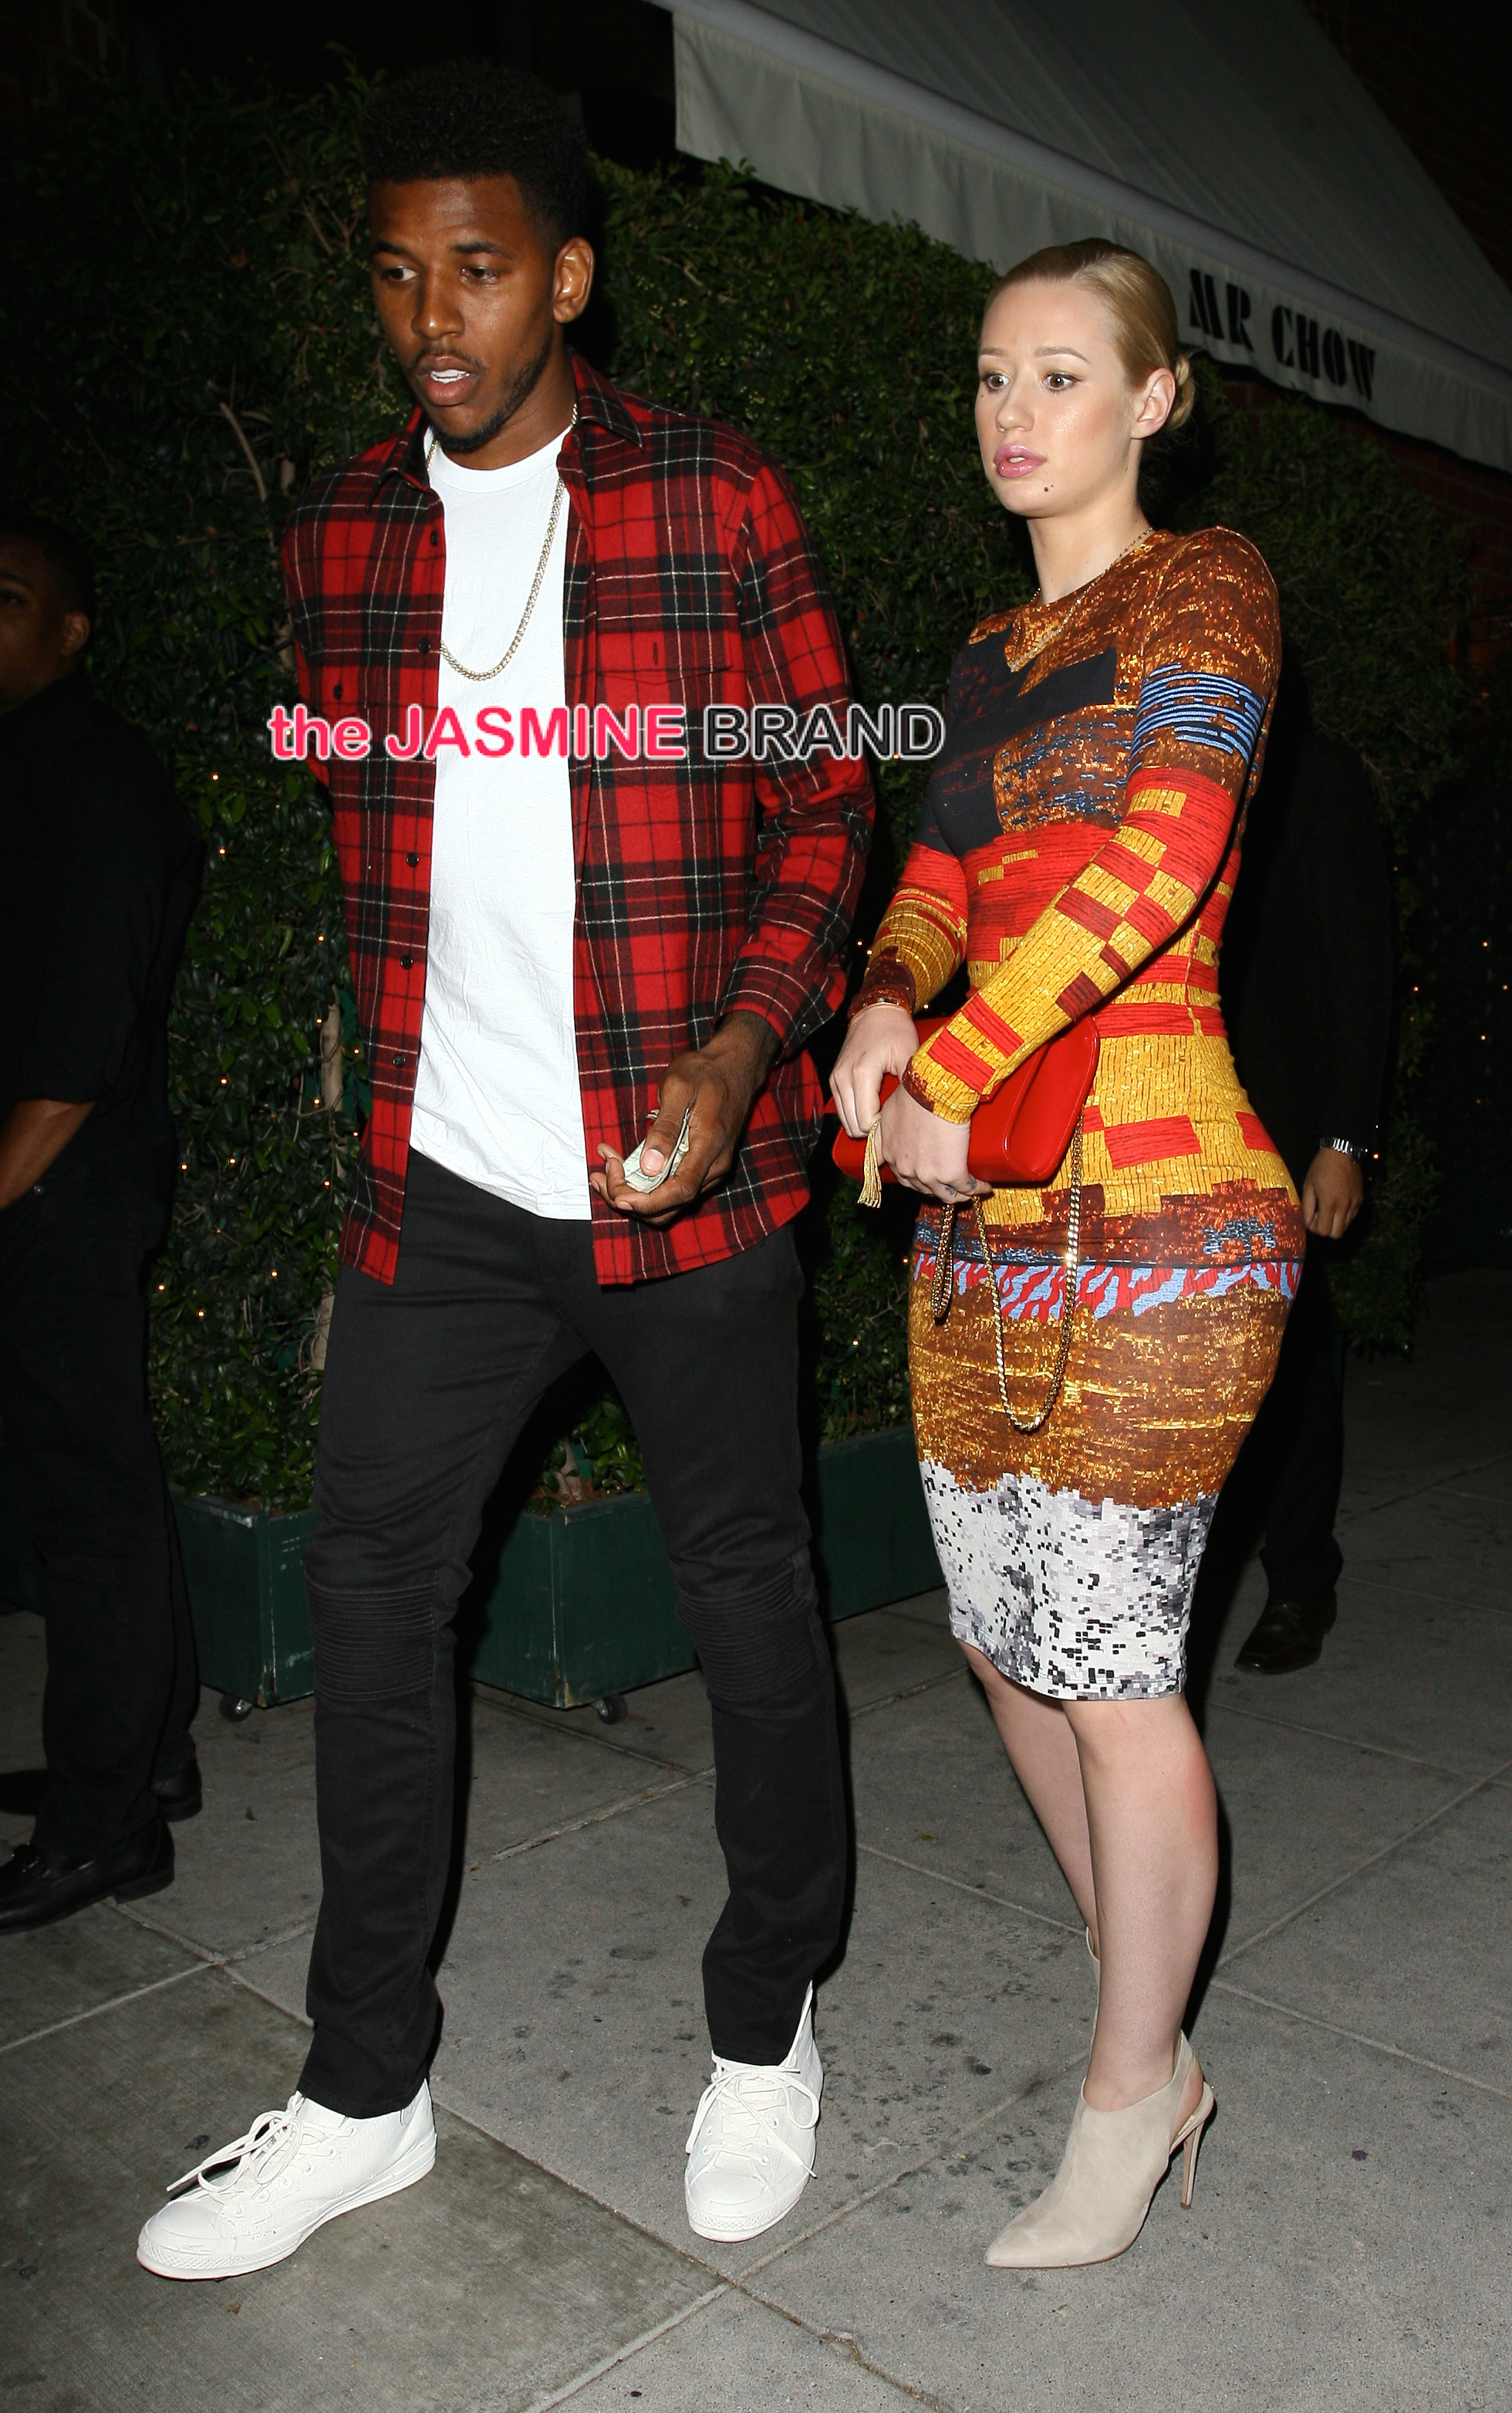 Singer Iggy Azalea dines out with her boyfriend Nick Young at Mr Chow in Beverly Hills, CA